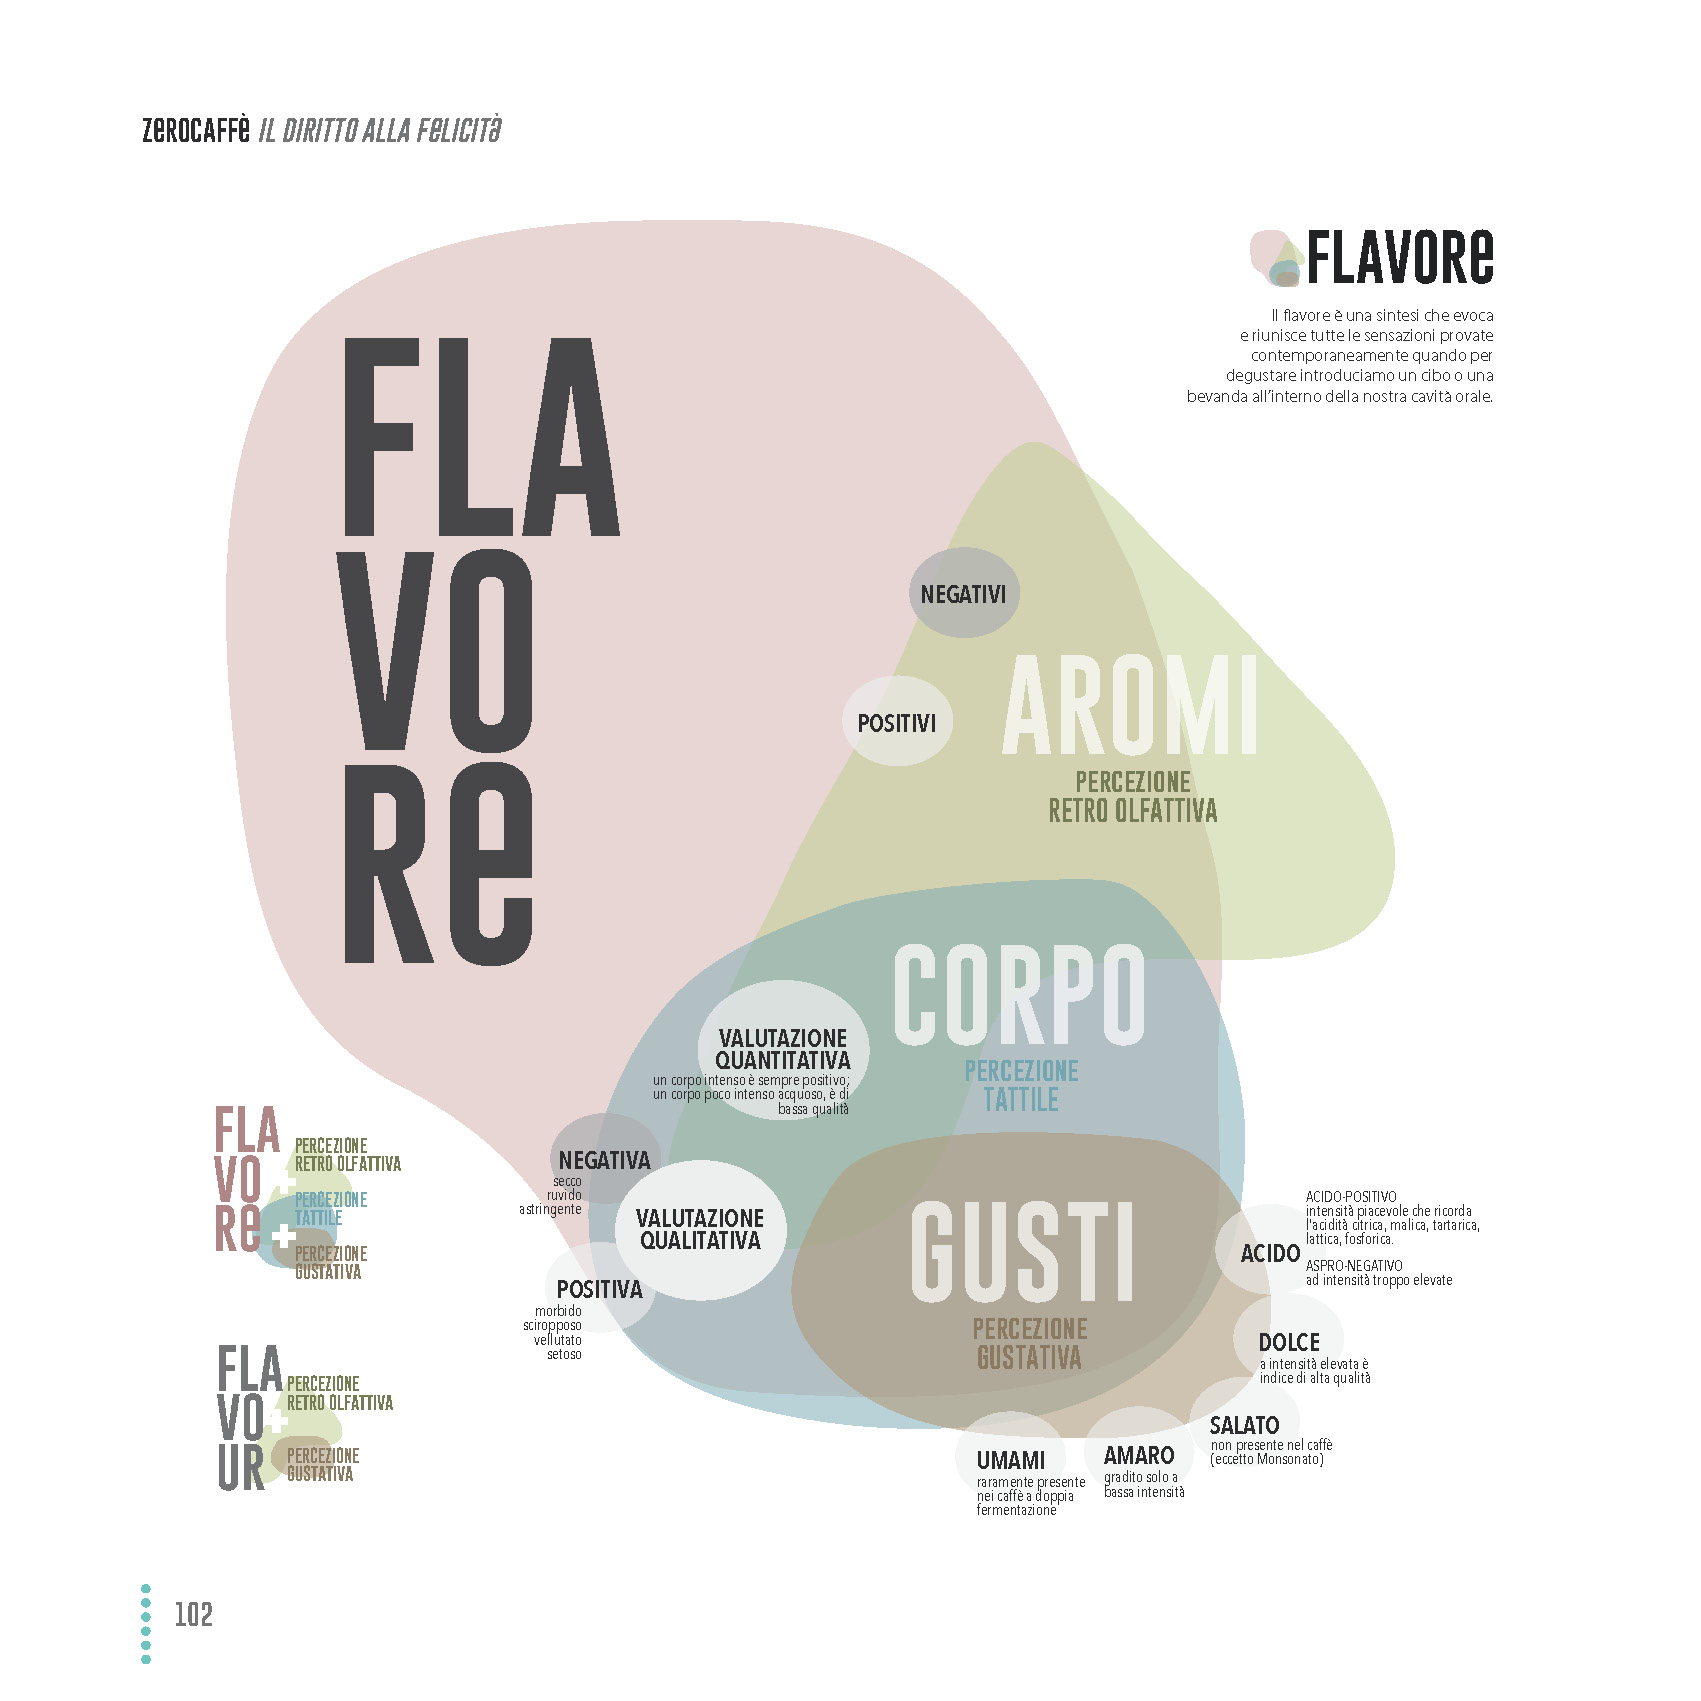 FLAVORE